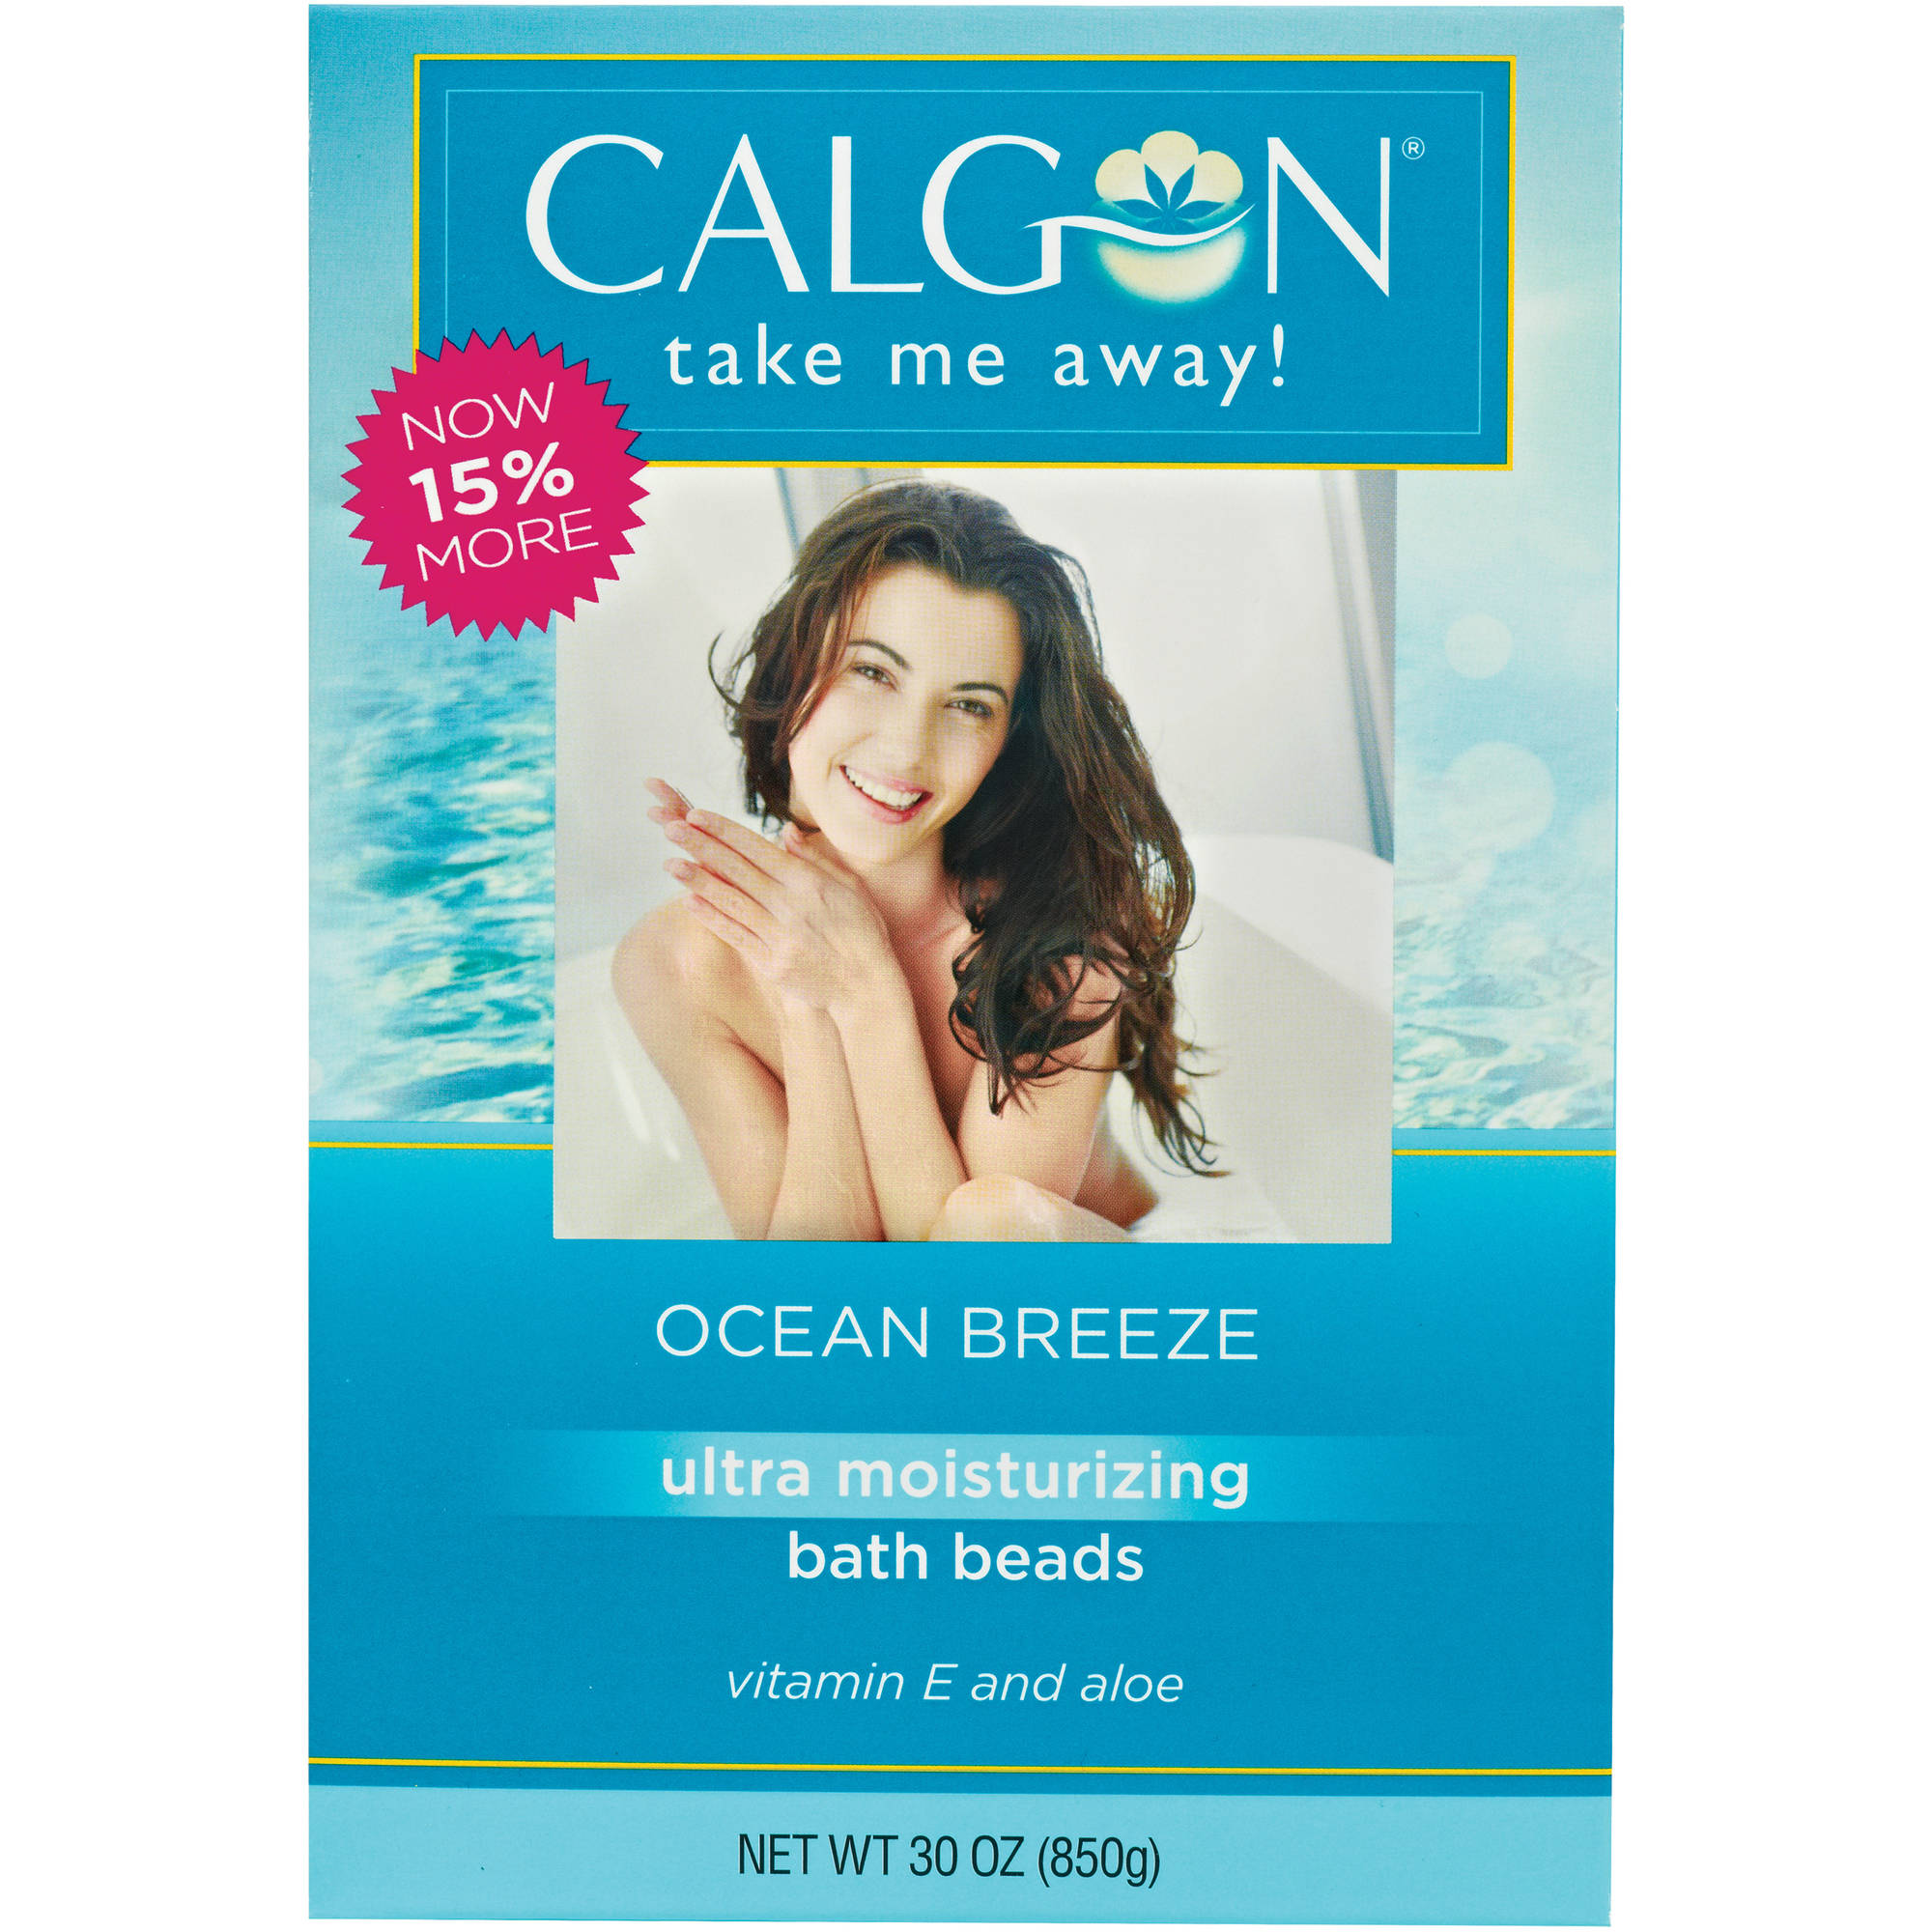 Calgon Ocean Breeze Bath Beads, 30 oz